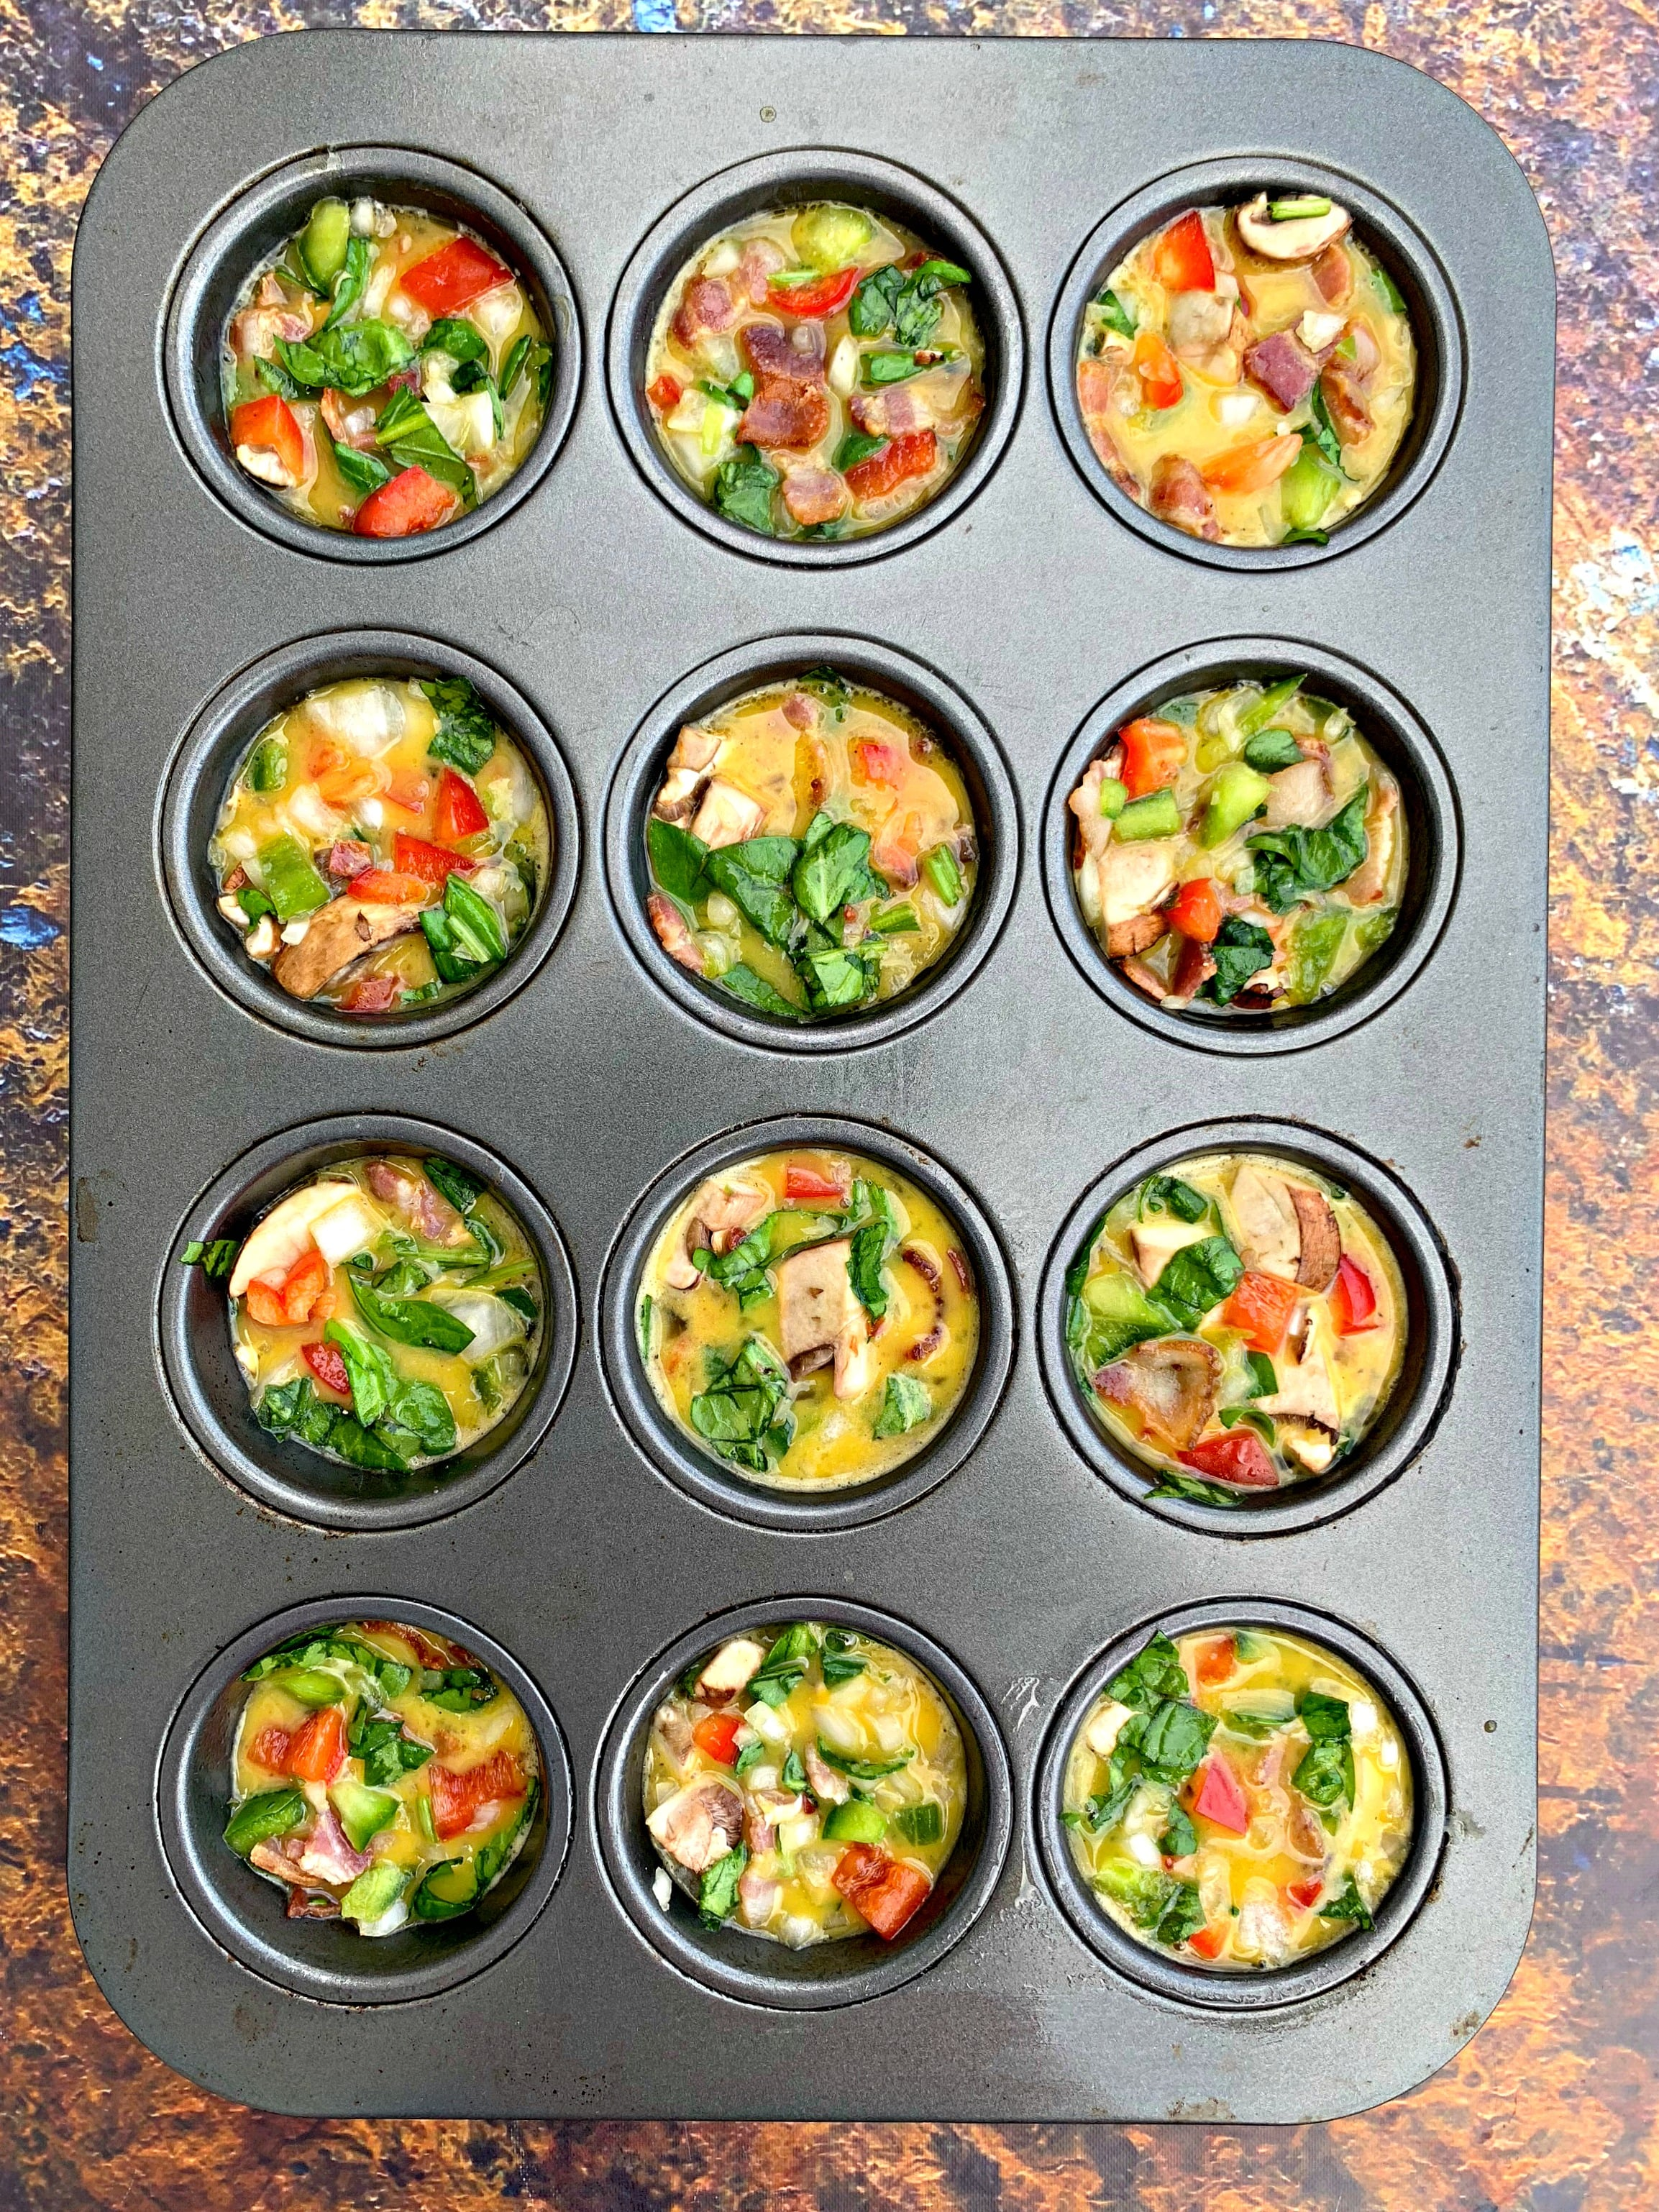 raw eggs with vegetables in a muffin tin